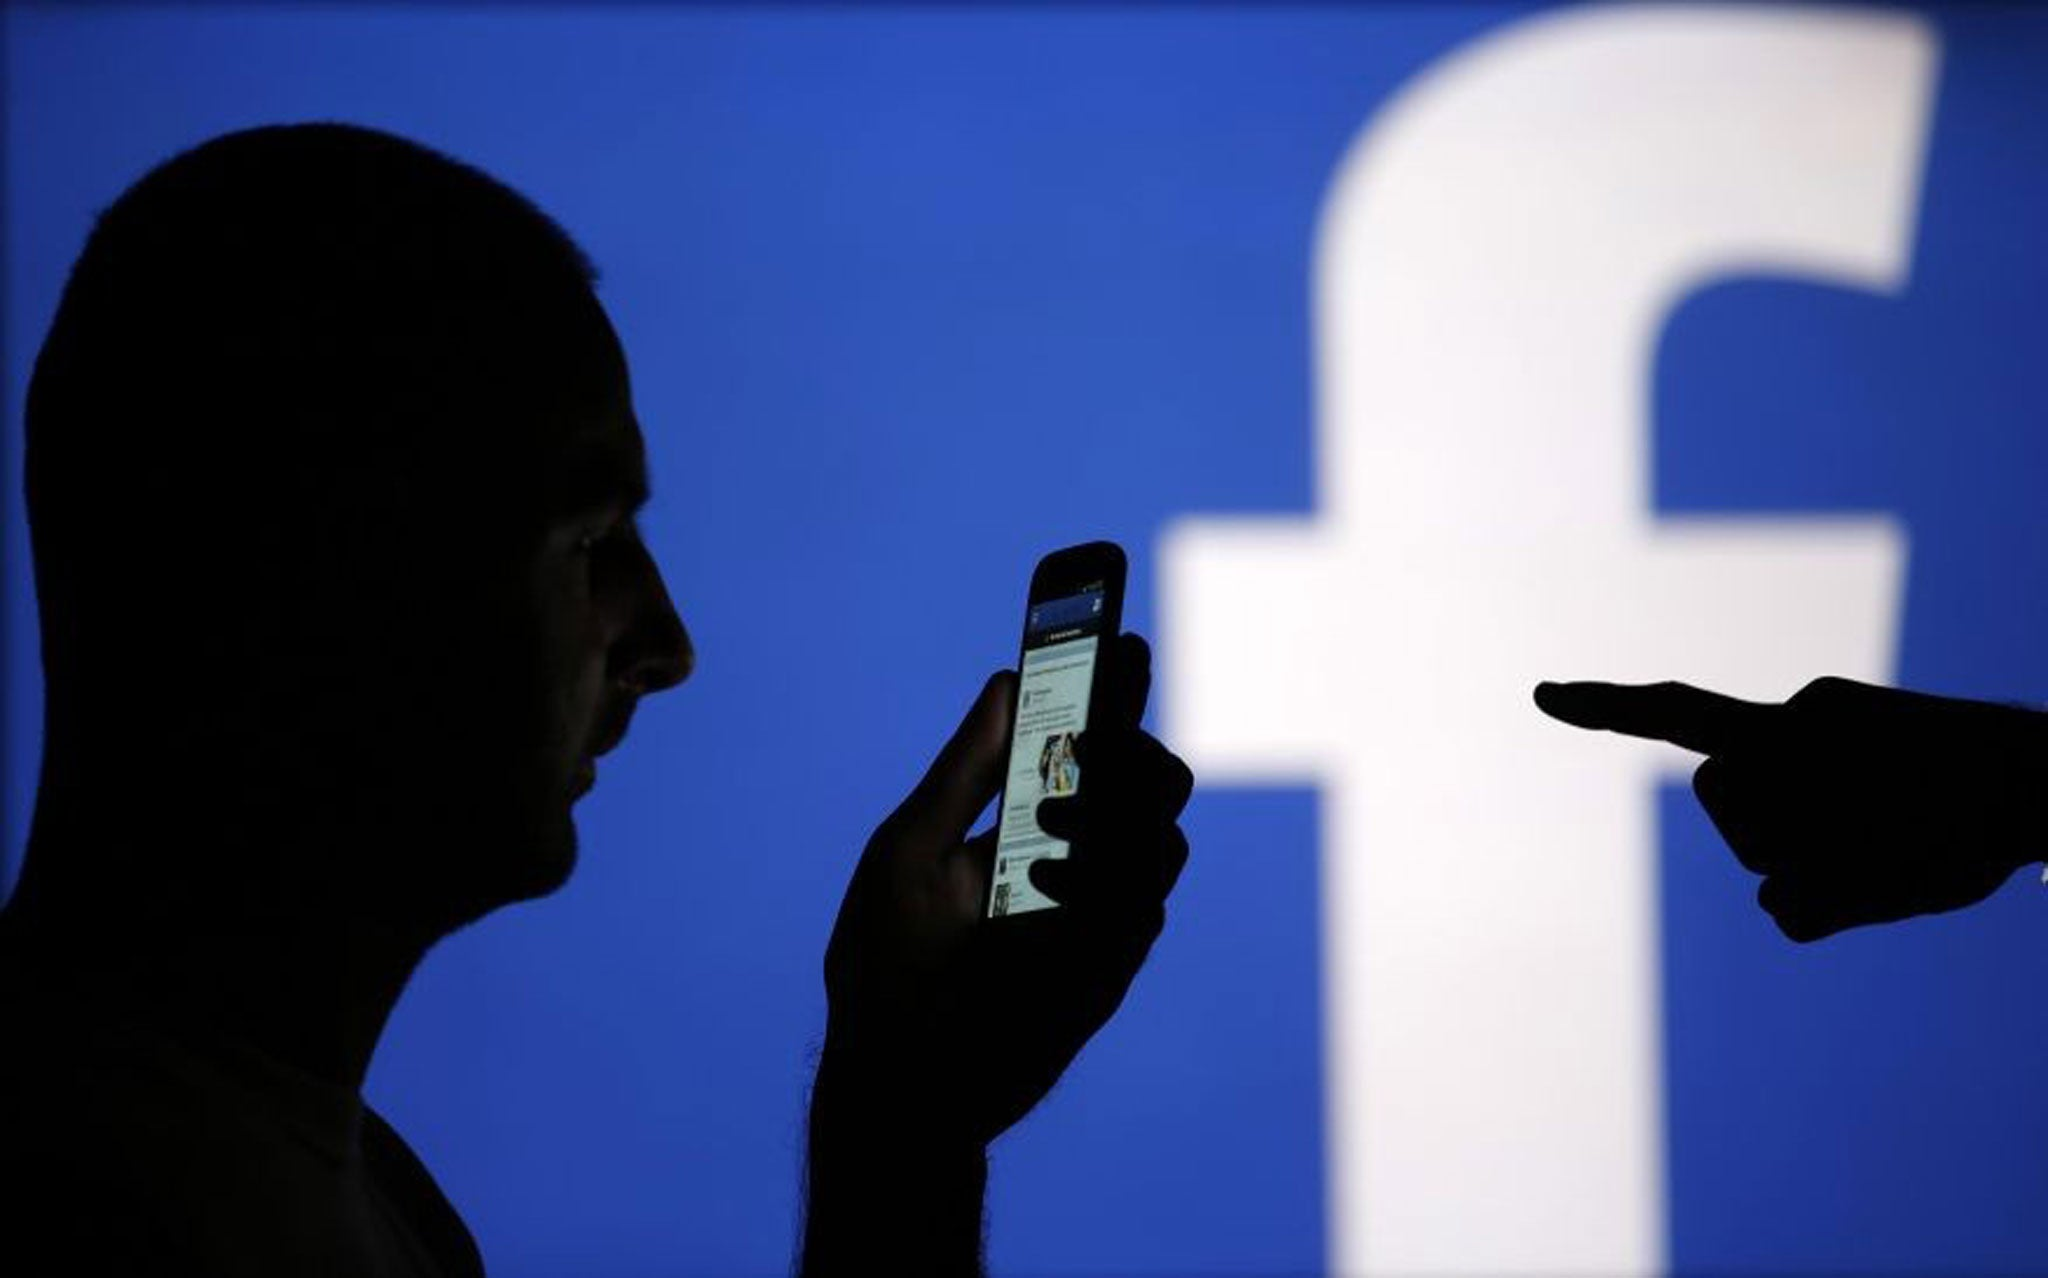 New British Army unit 'Brigade 77' to use Facebook and Twitter in